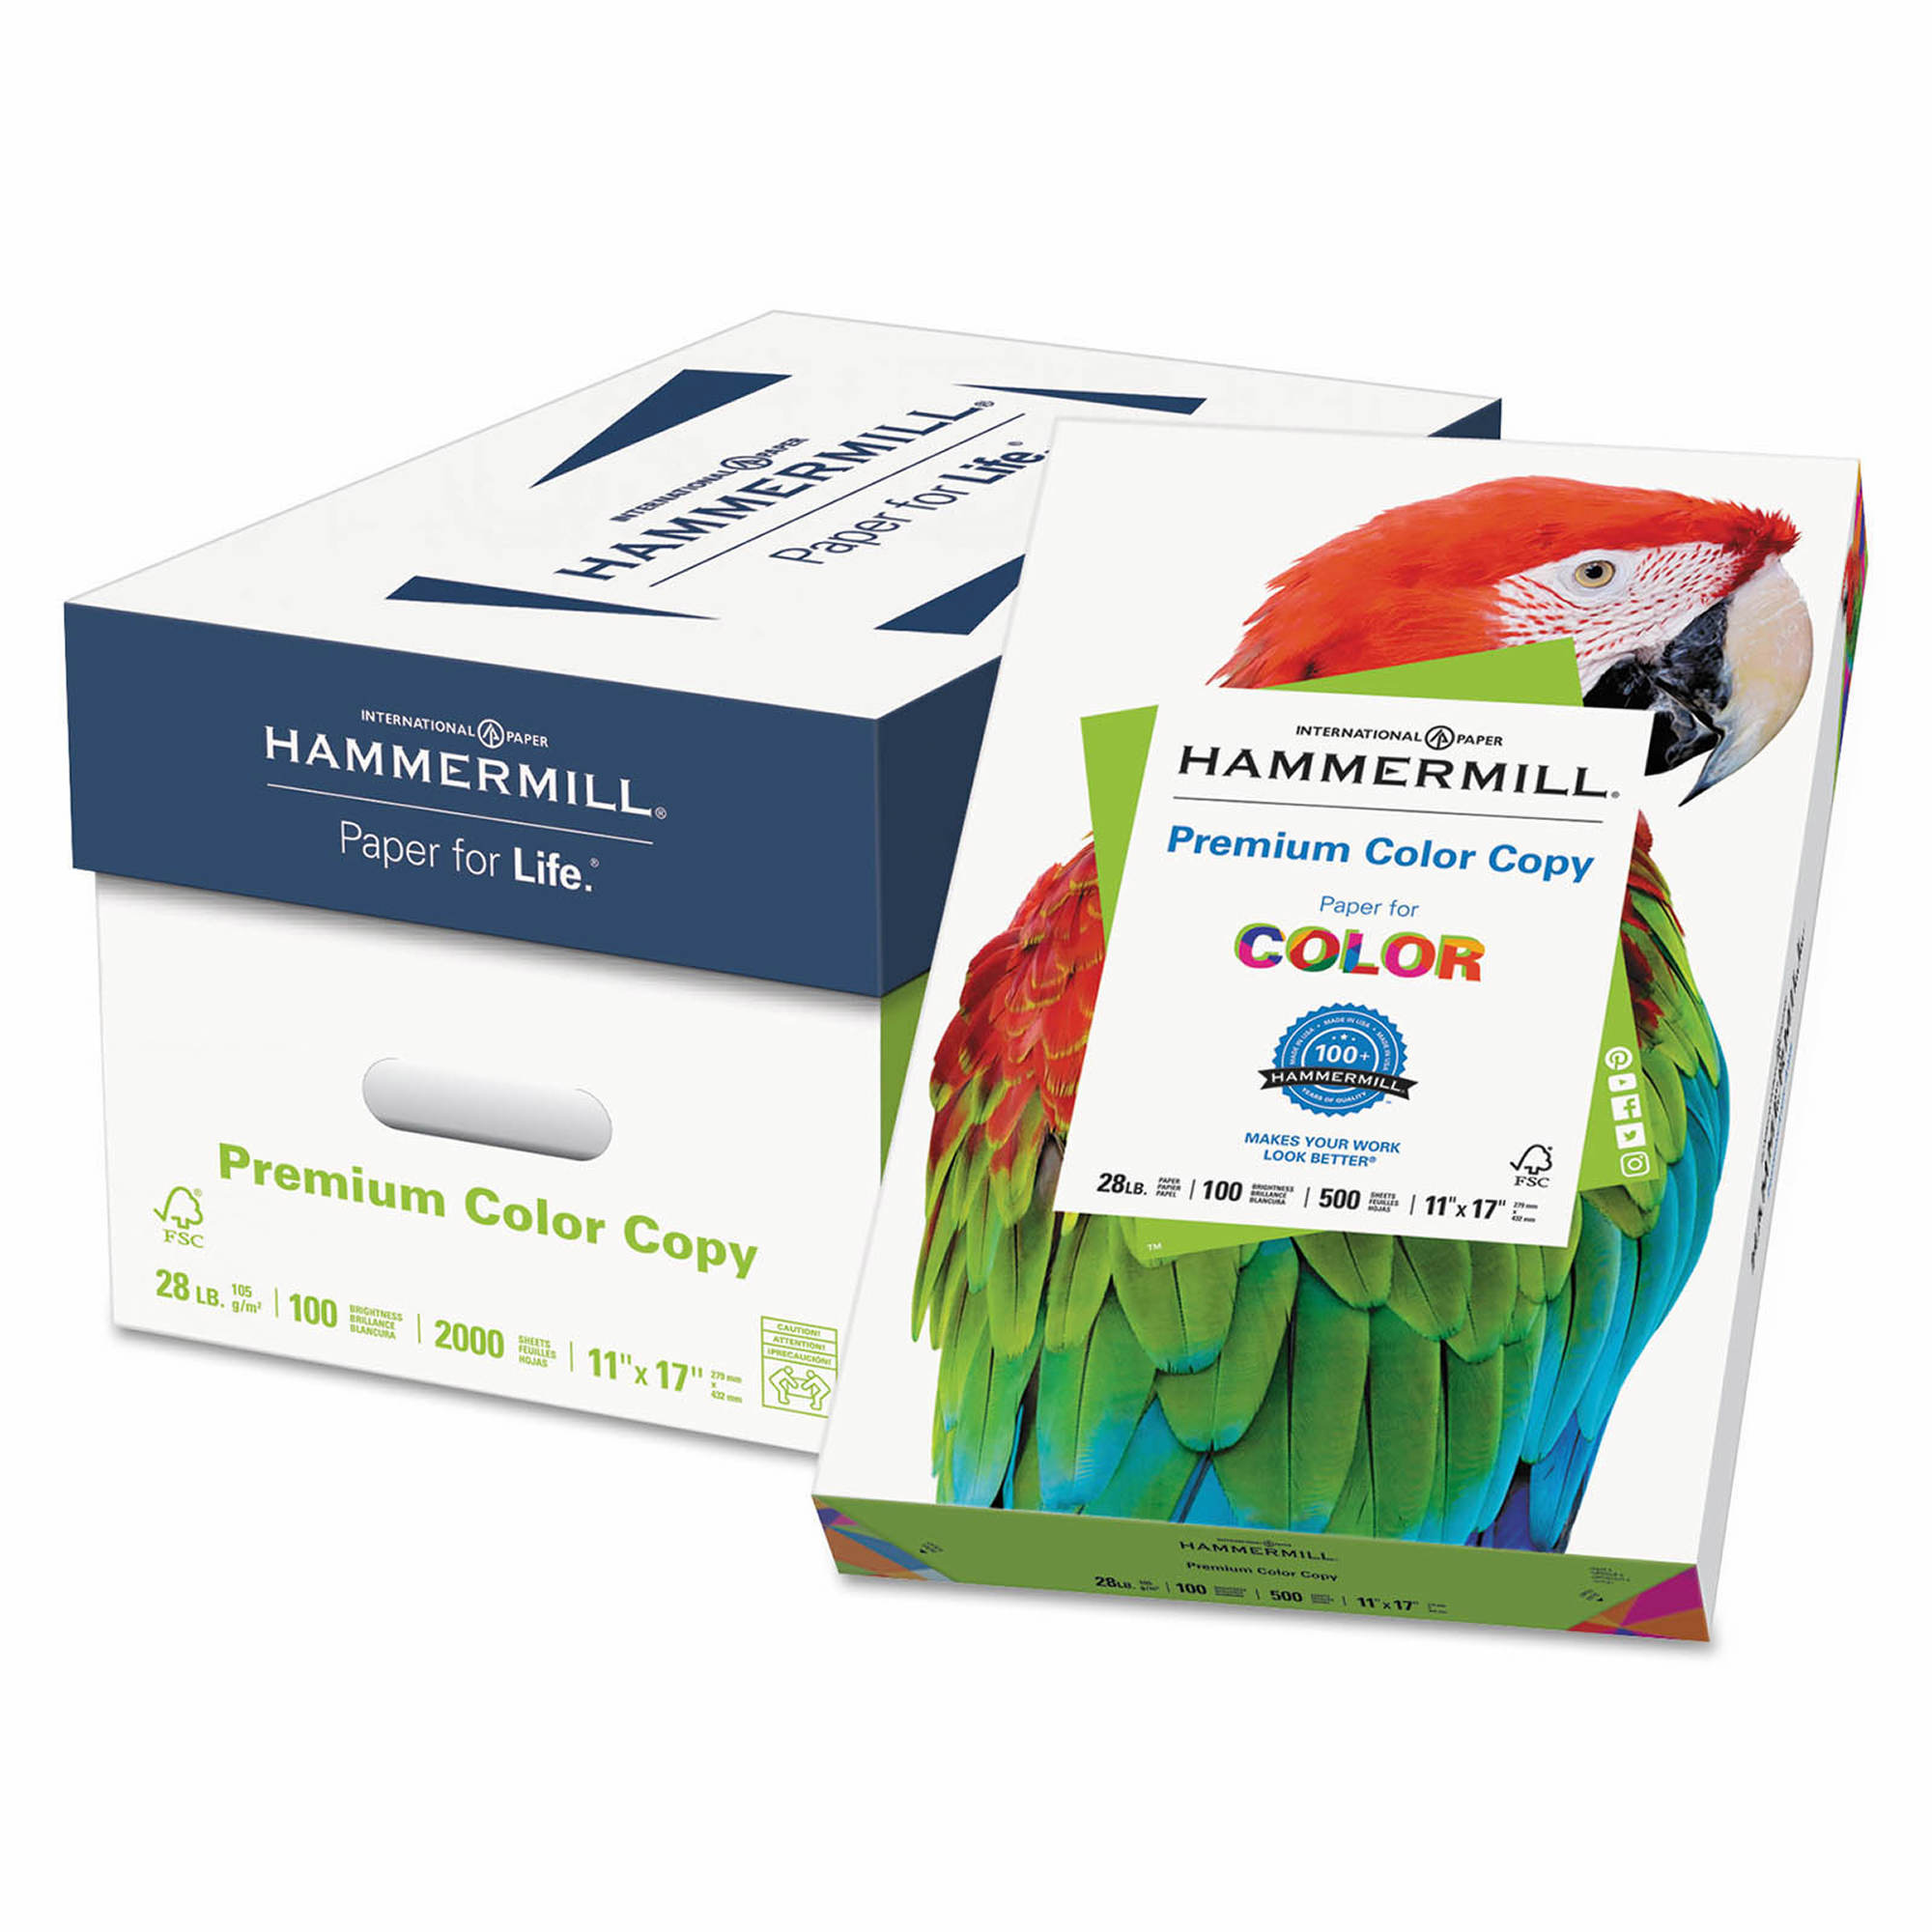 "Hammermill Color Copy Paper with 100 Brightness, 28-lb., 11"" x 17"", 500 ct. - Photo White"